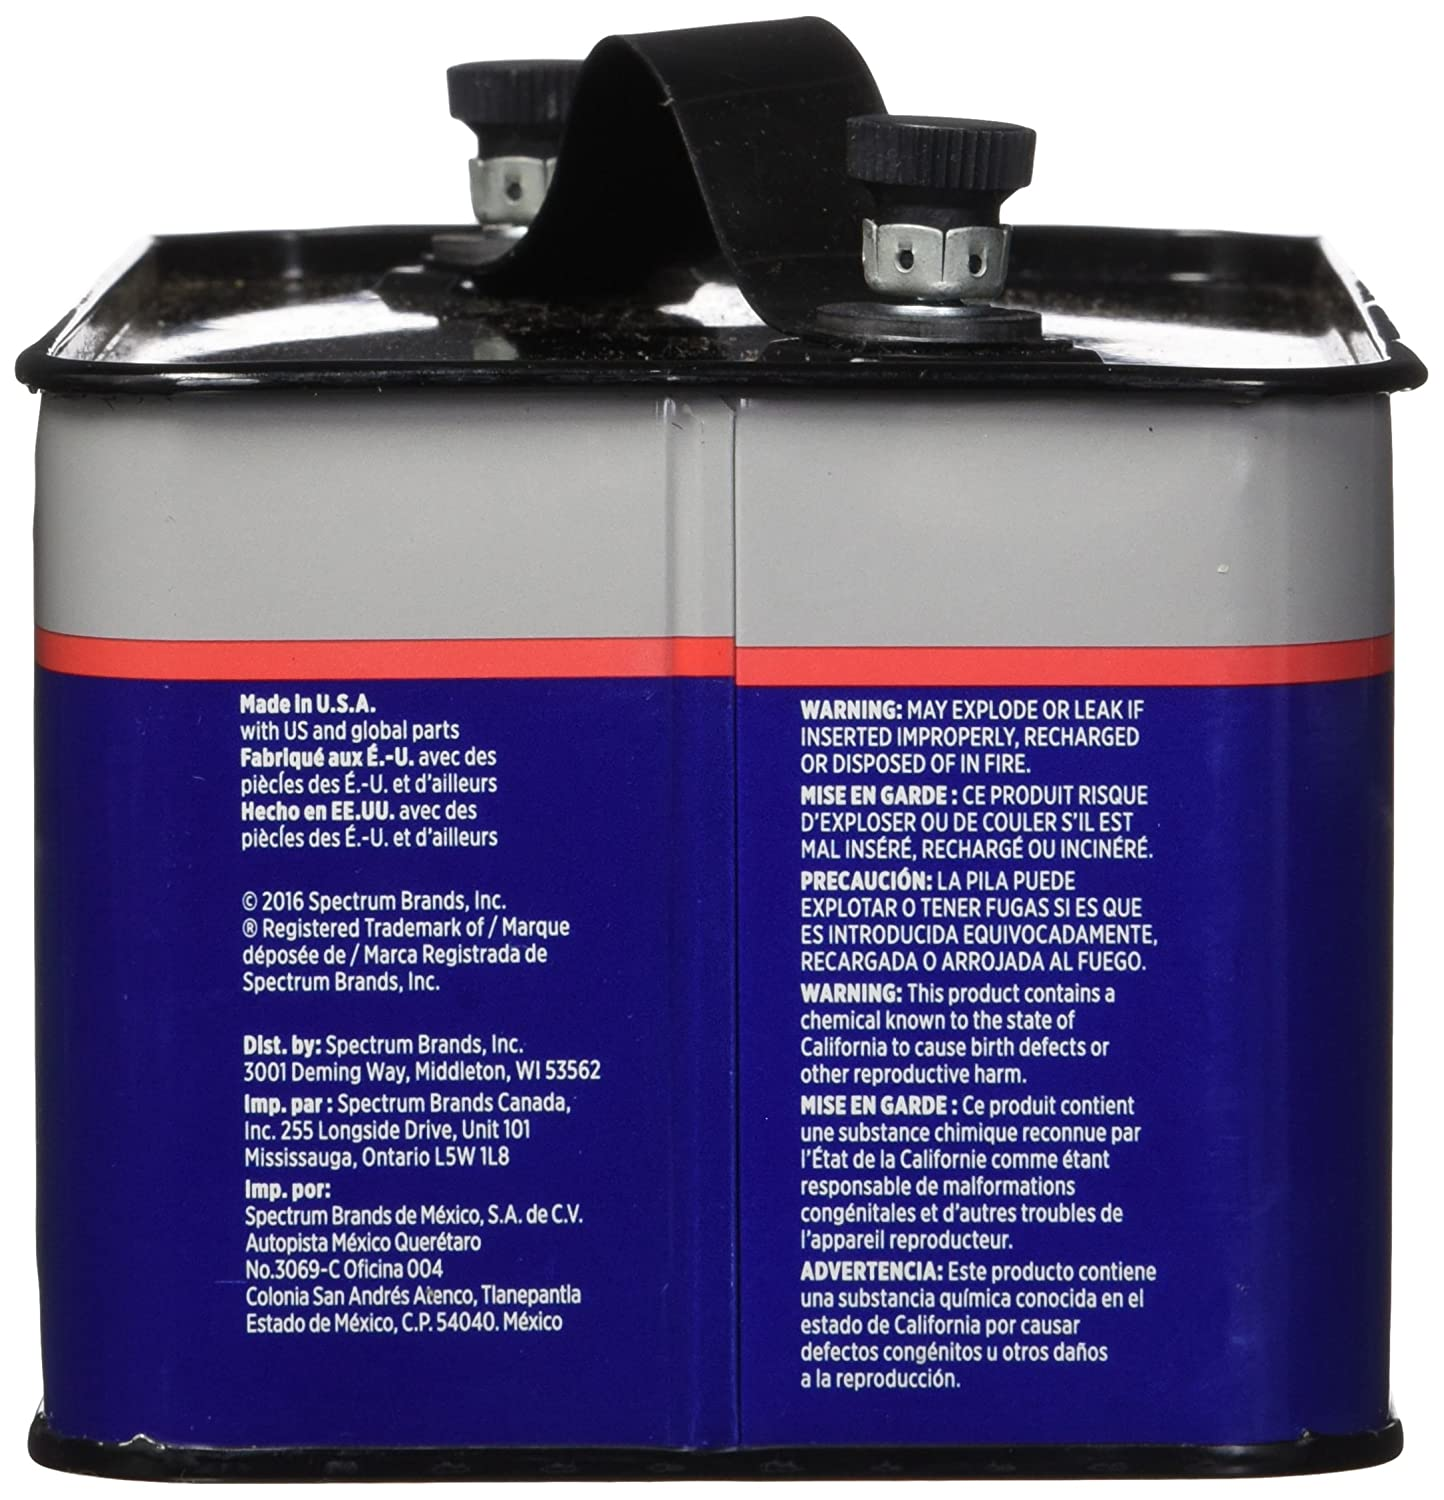 Amazon.com: Rayovac 803 Lantern Battery, 7.5 Volt Screw Terminals, Alkaline Emergency: Health & Personal Care